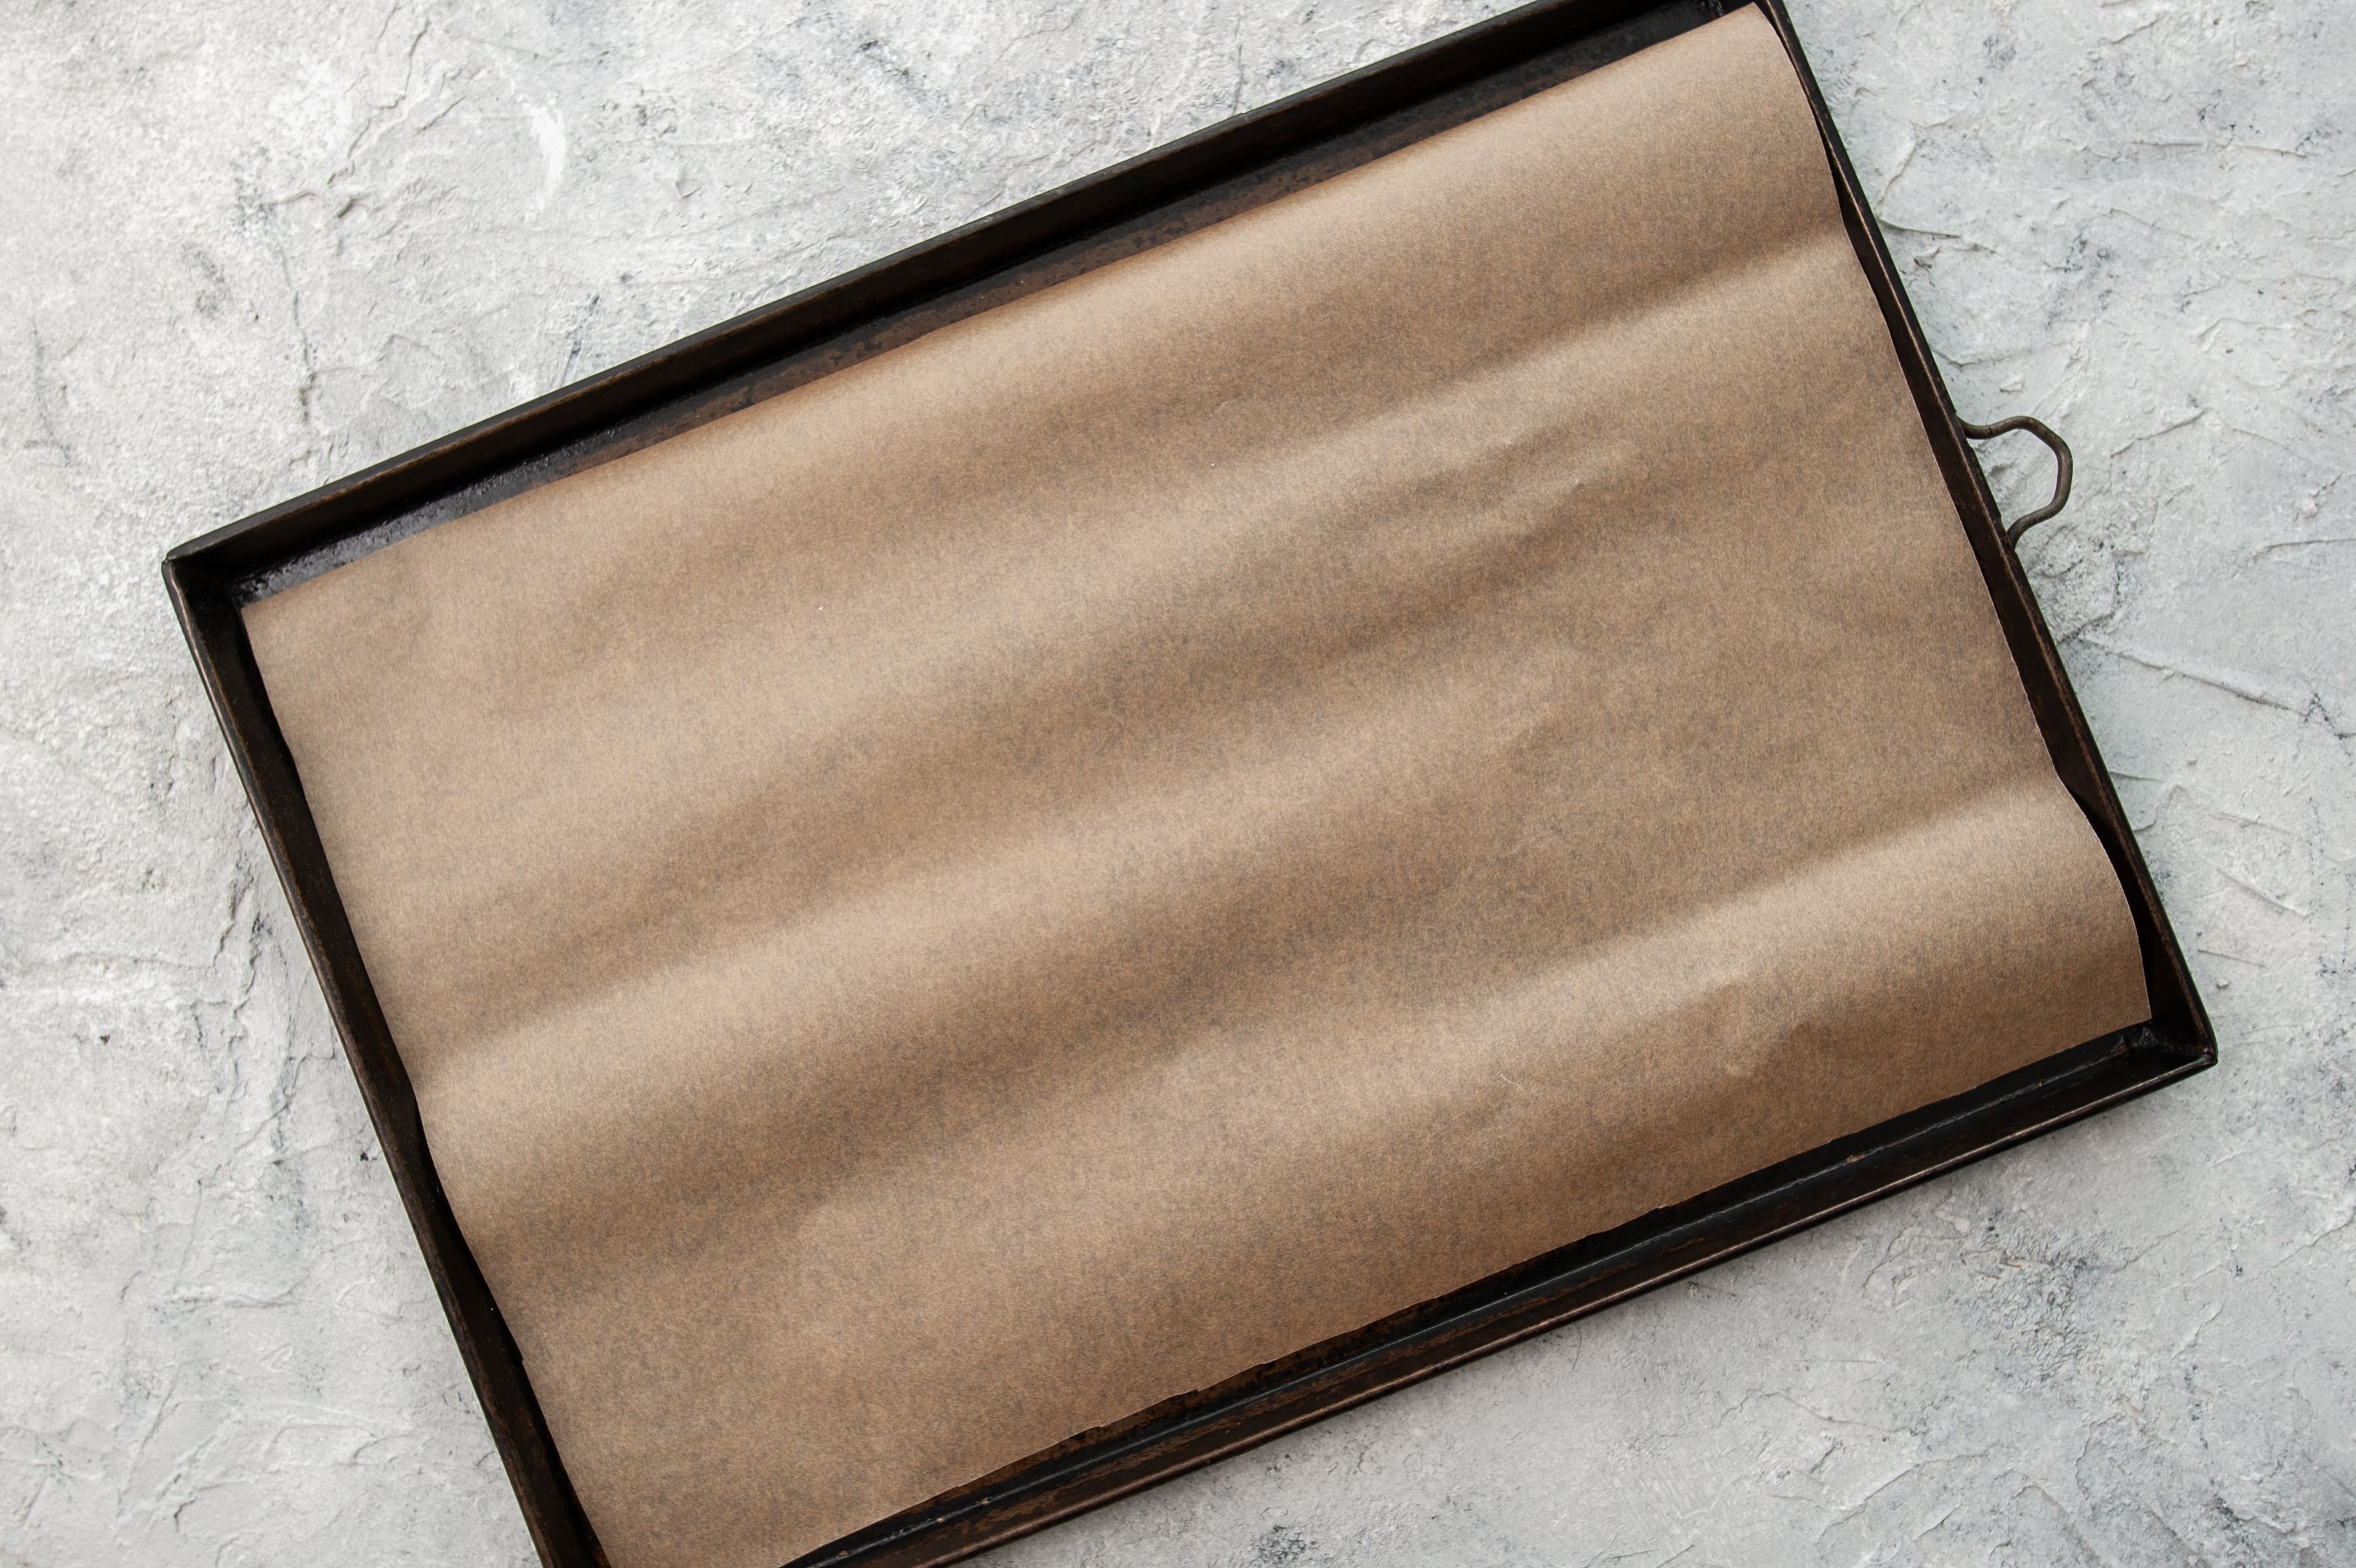 Grease cookie sheet